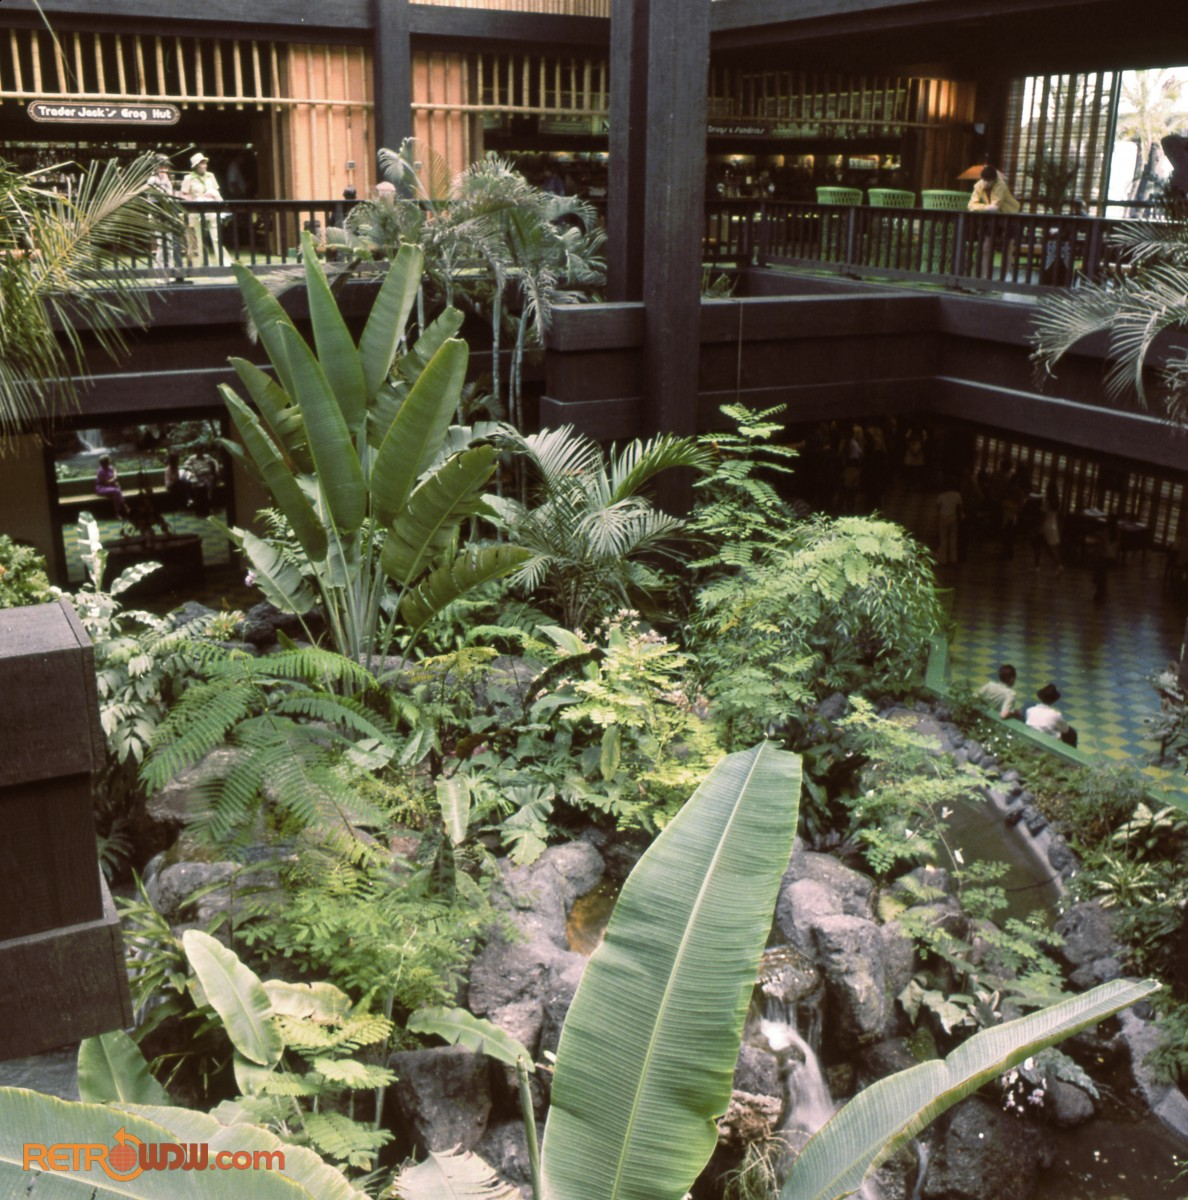 Polynesian Village Lobby - Plants are Focal Point in Lobby